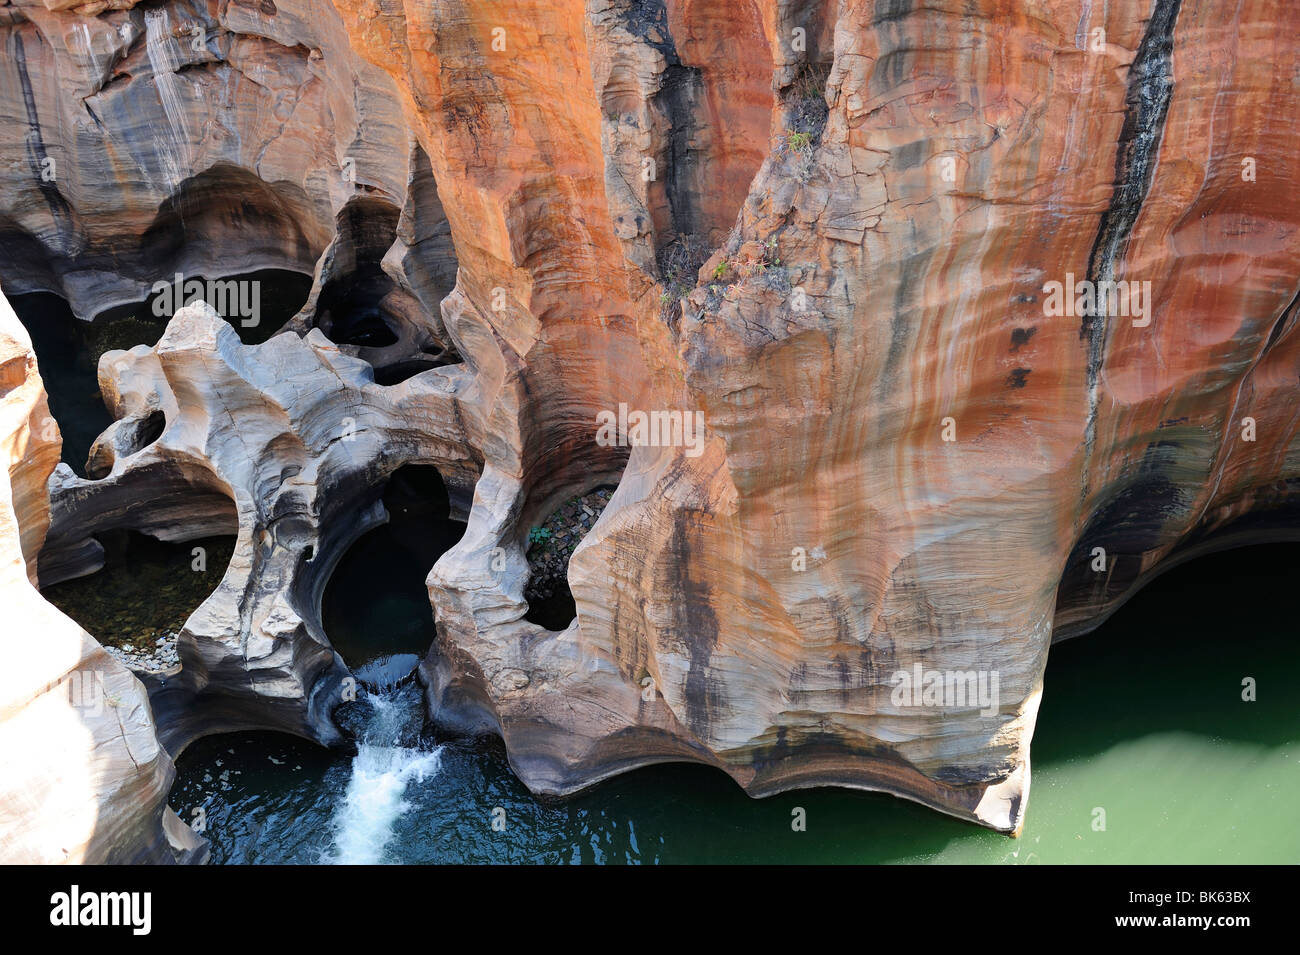 Bourke's Luck Potholes, Blyde River Canyon in Mpumalanga Province, South Africa - Stock Image